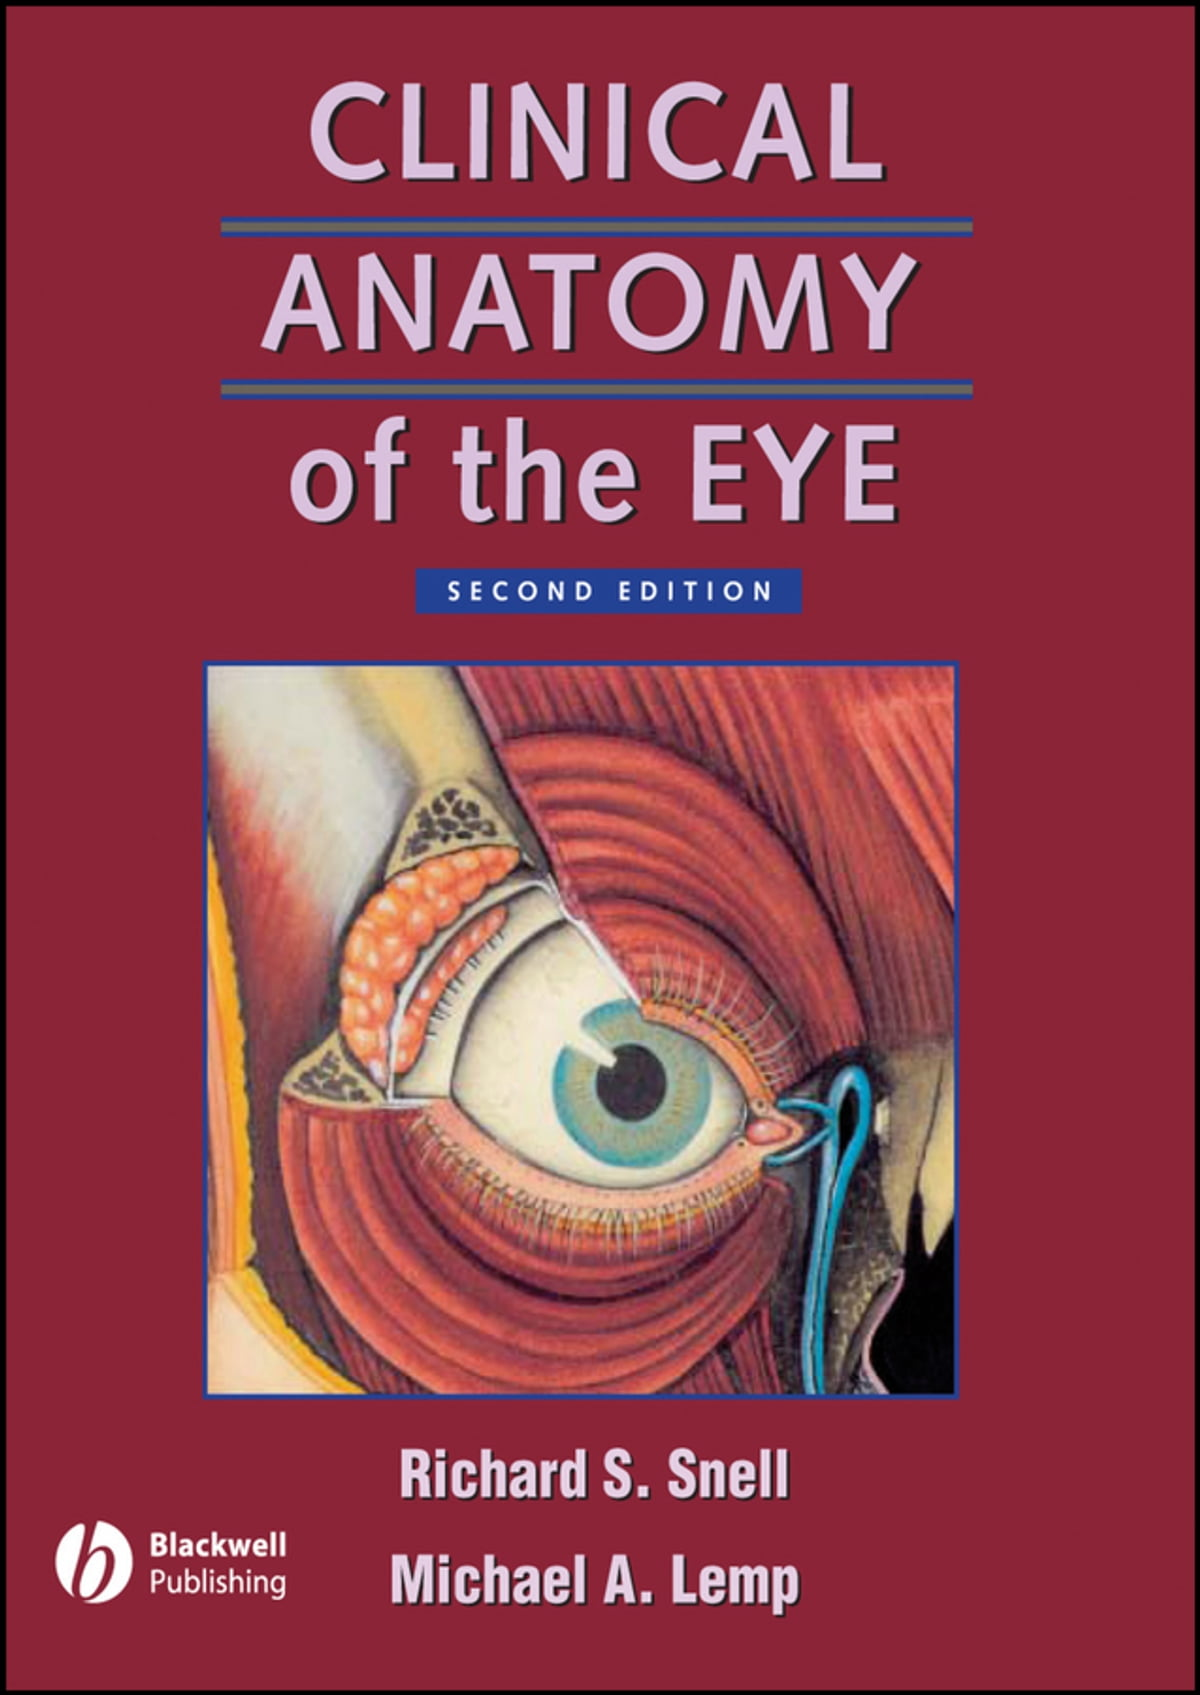 Clinical Anatomy Of The Eye Ebook By Richard S Snell